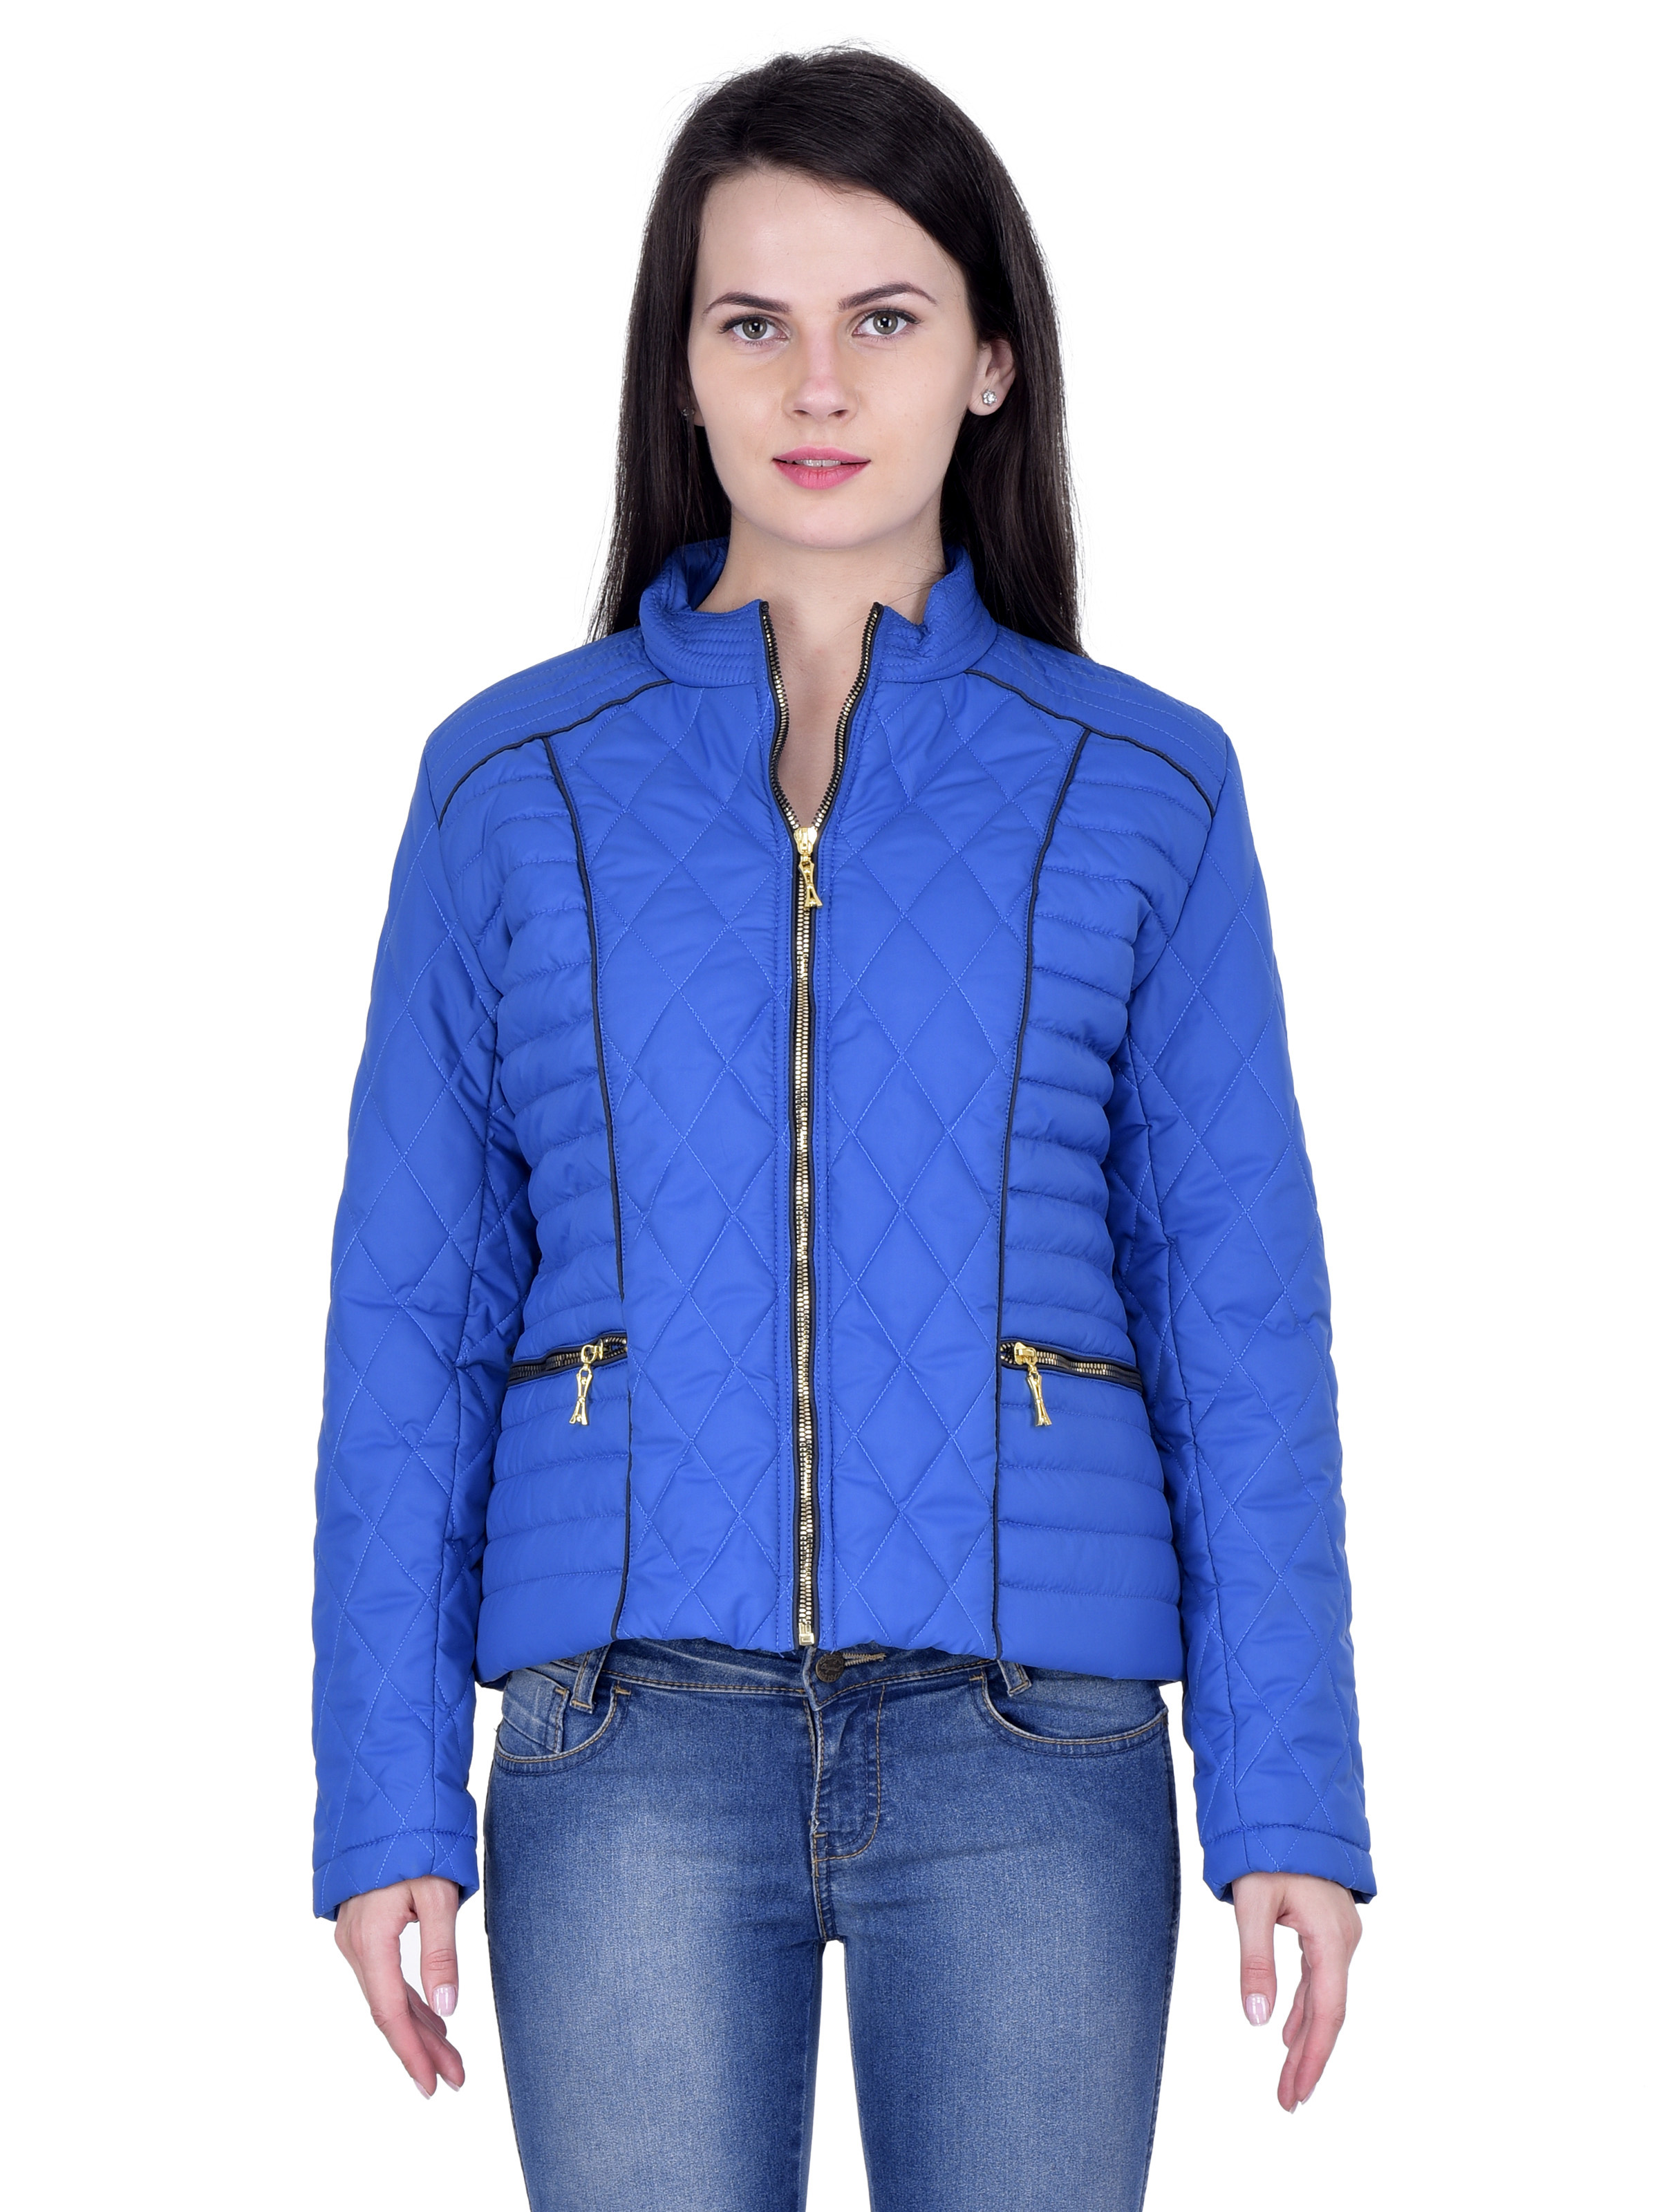 chicflic2 Women Quilted Jacket Jk162c